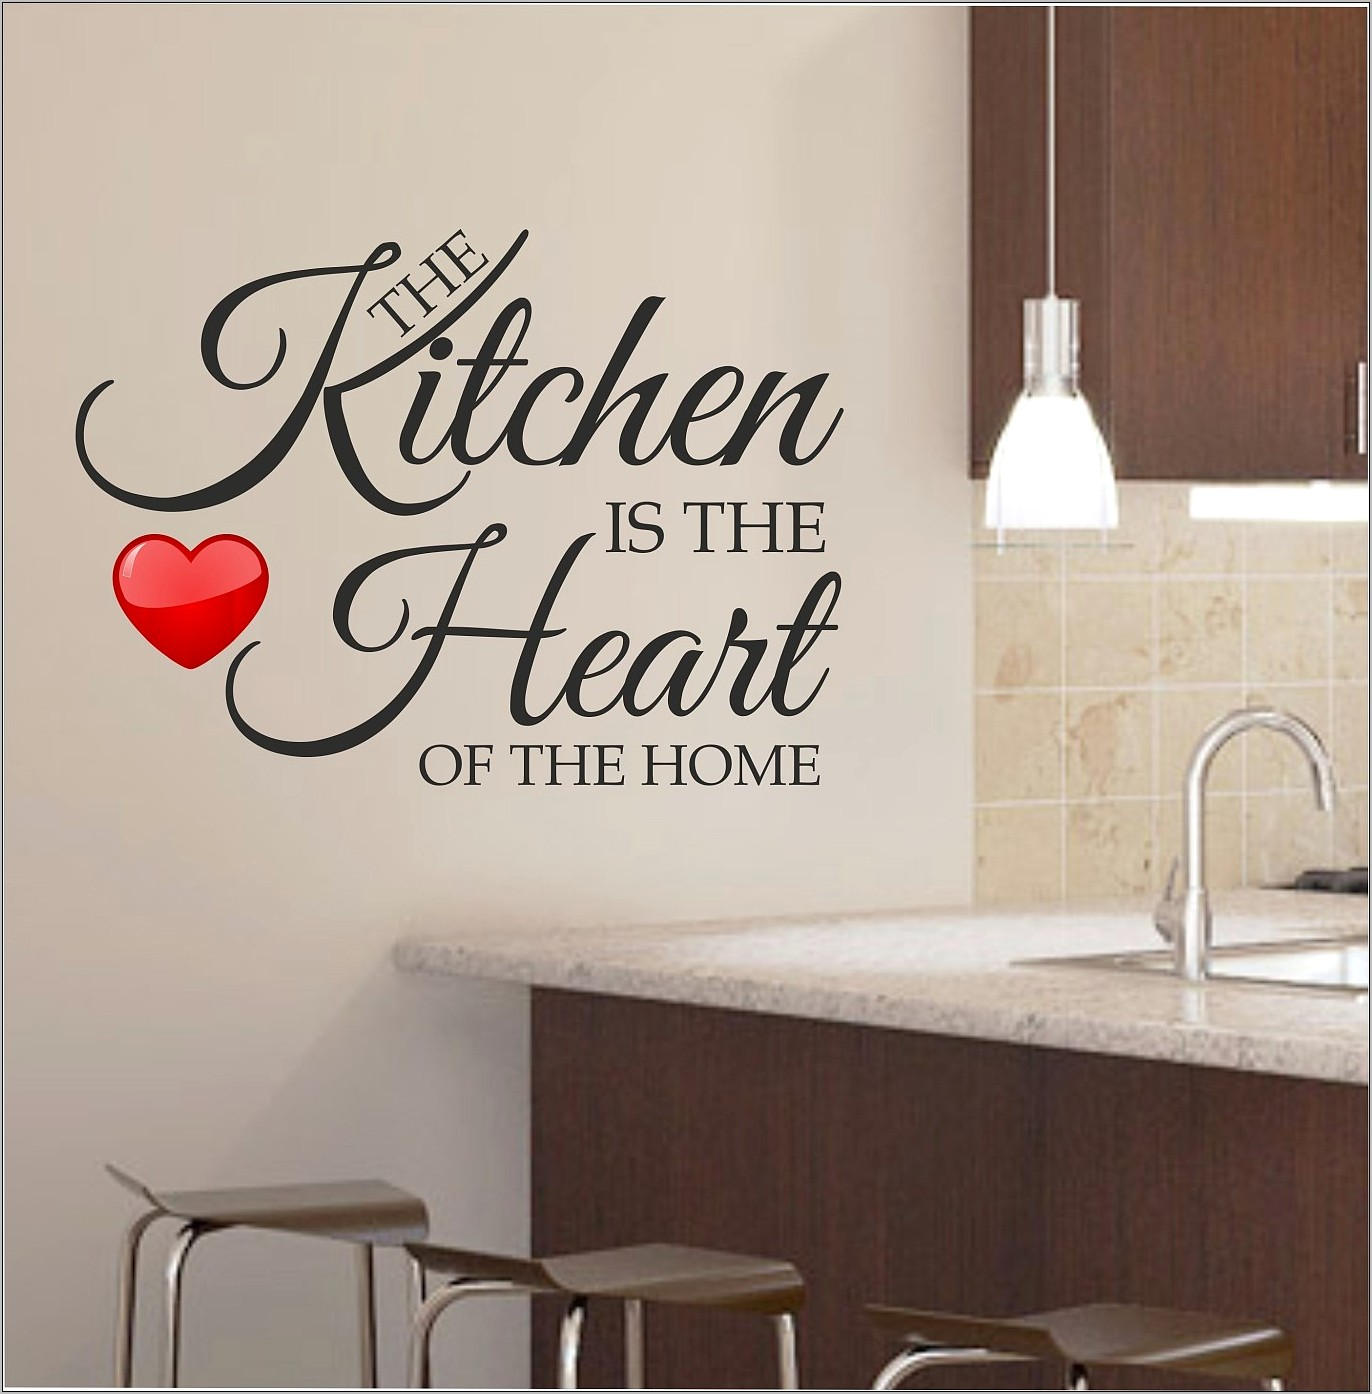 Cute Kitchen Wall Decor Ideas